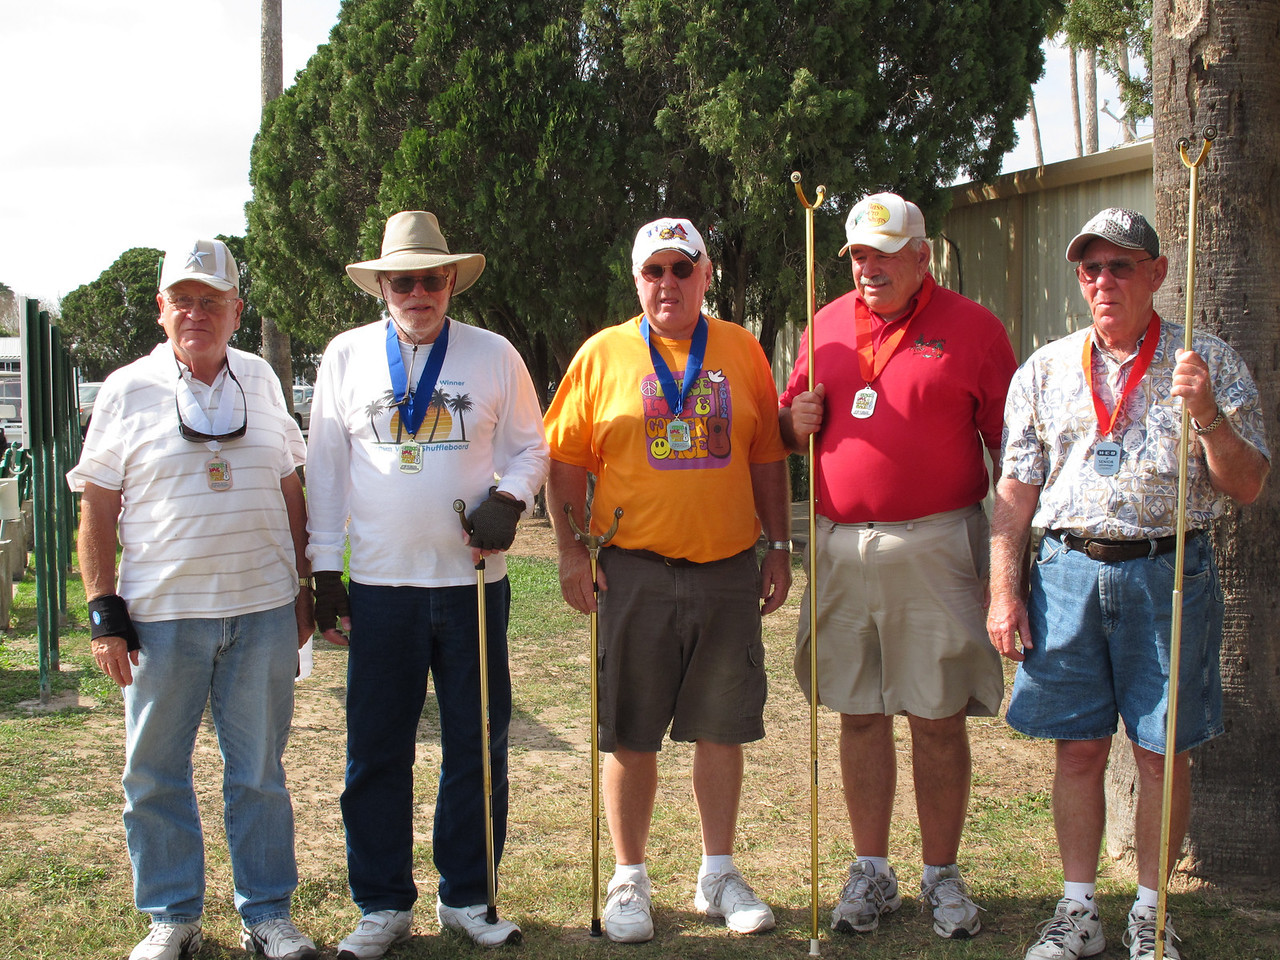 Shuffleboard Men's Doubles Expert (L-R) 3rd Place - Ed Yauchzee (Casa Del Sol) & (not pictured) Jim Thompson (Alamo Palms), 1st Place - Red Rudolph (Aladdin Village) & David Lamphere (Ranchero Village), 2nd Place - Jerry Carlisle (Pine to Palm) & Earl Doell (Pine to Palm)